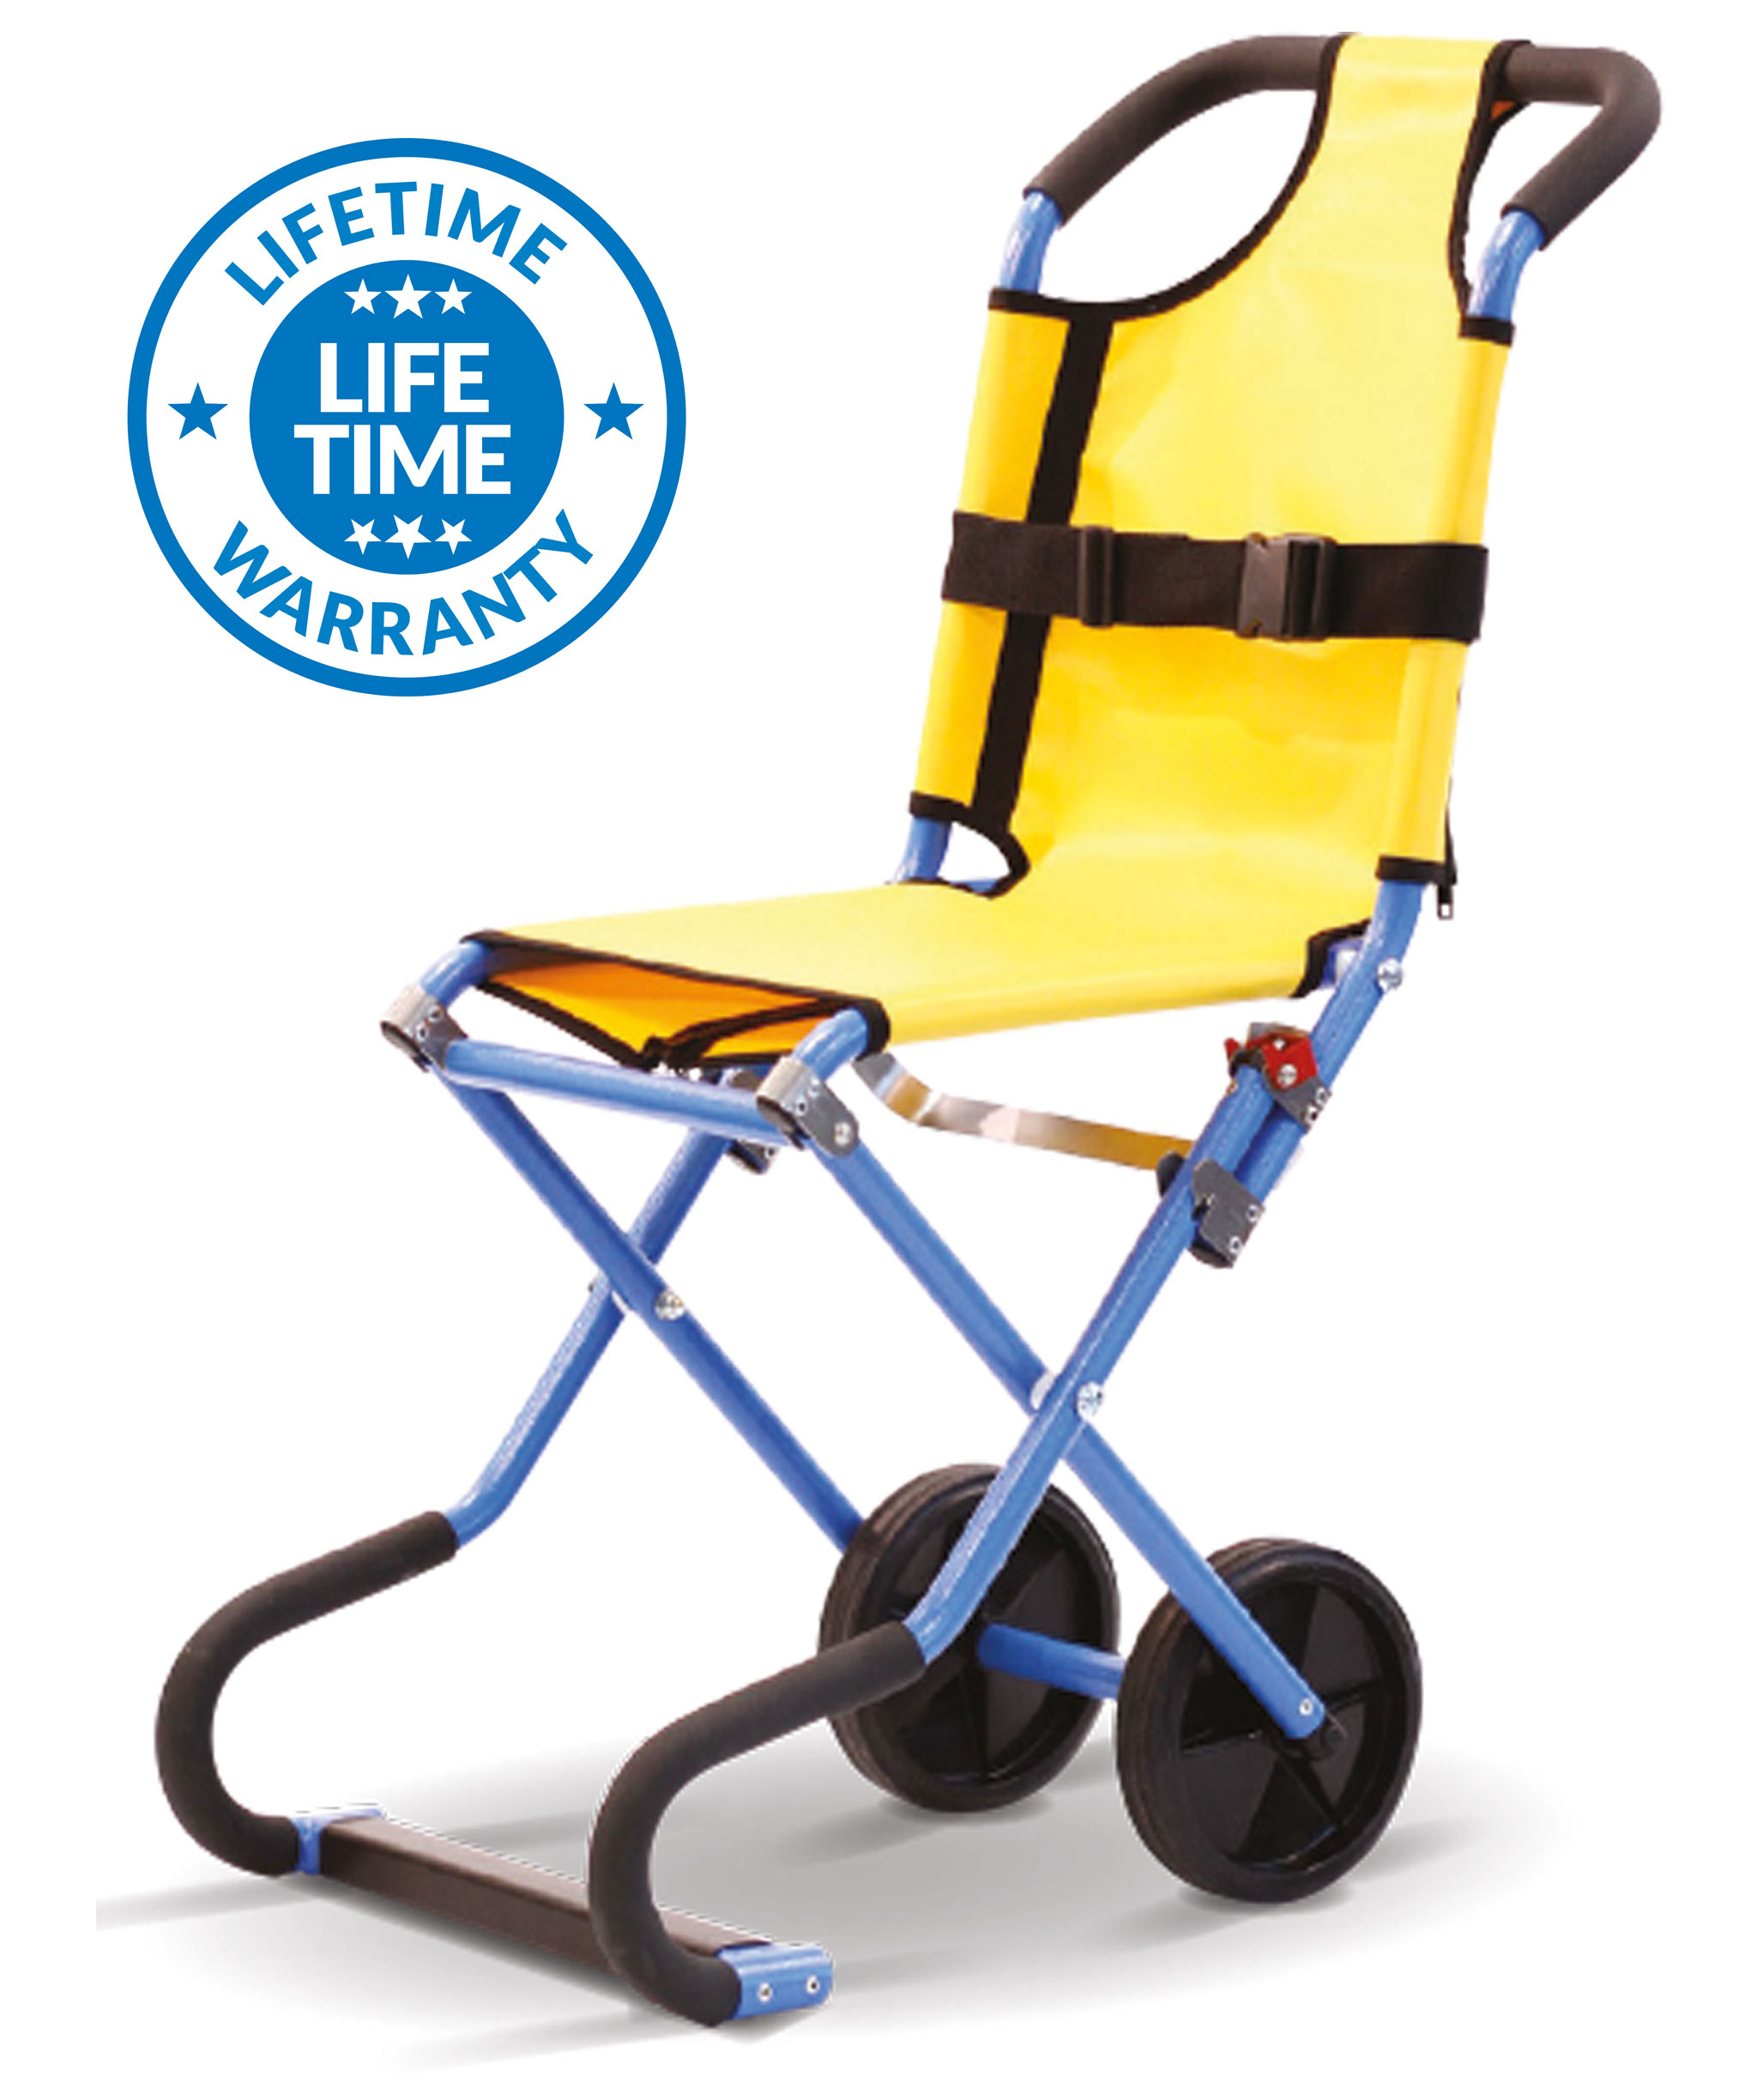 Carrylite Transit Chair Evacuation Chair